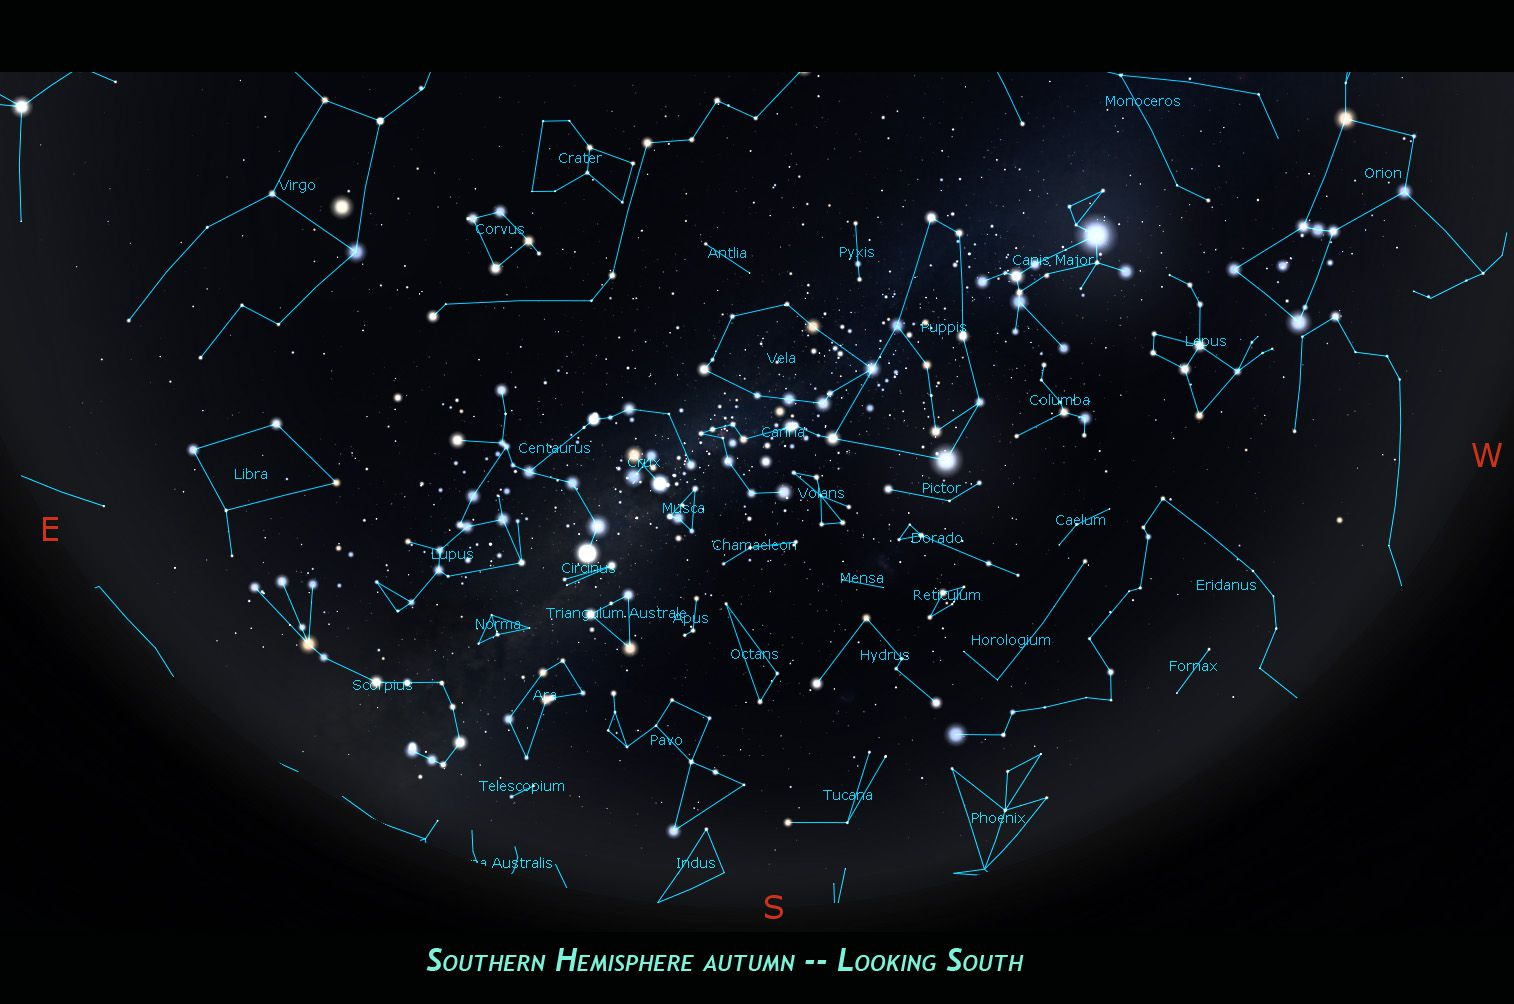 Southern Hemisphere autumn constellations, looking south.